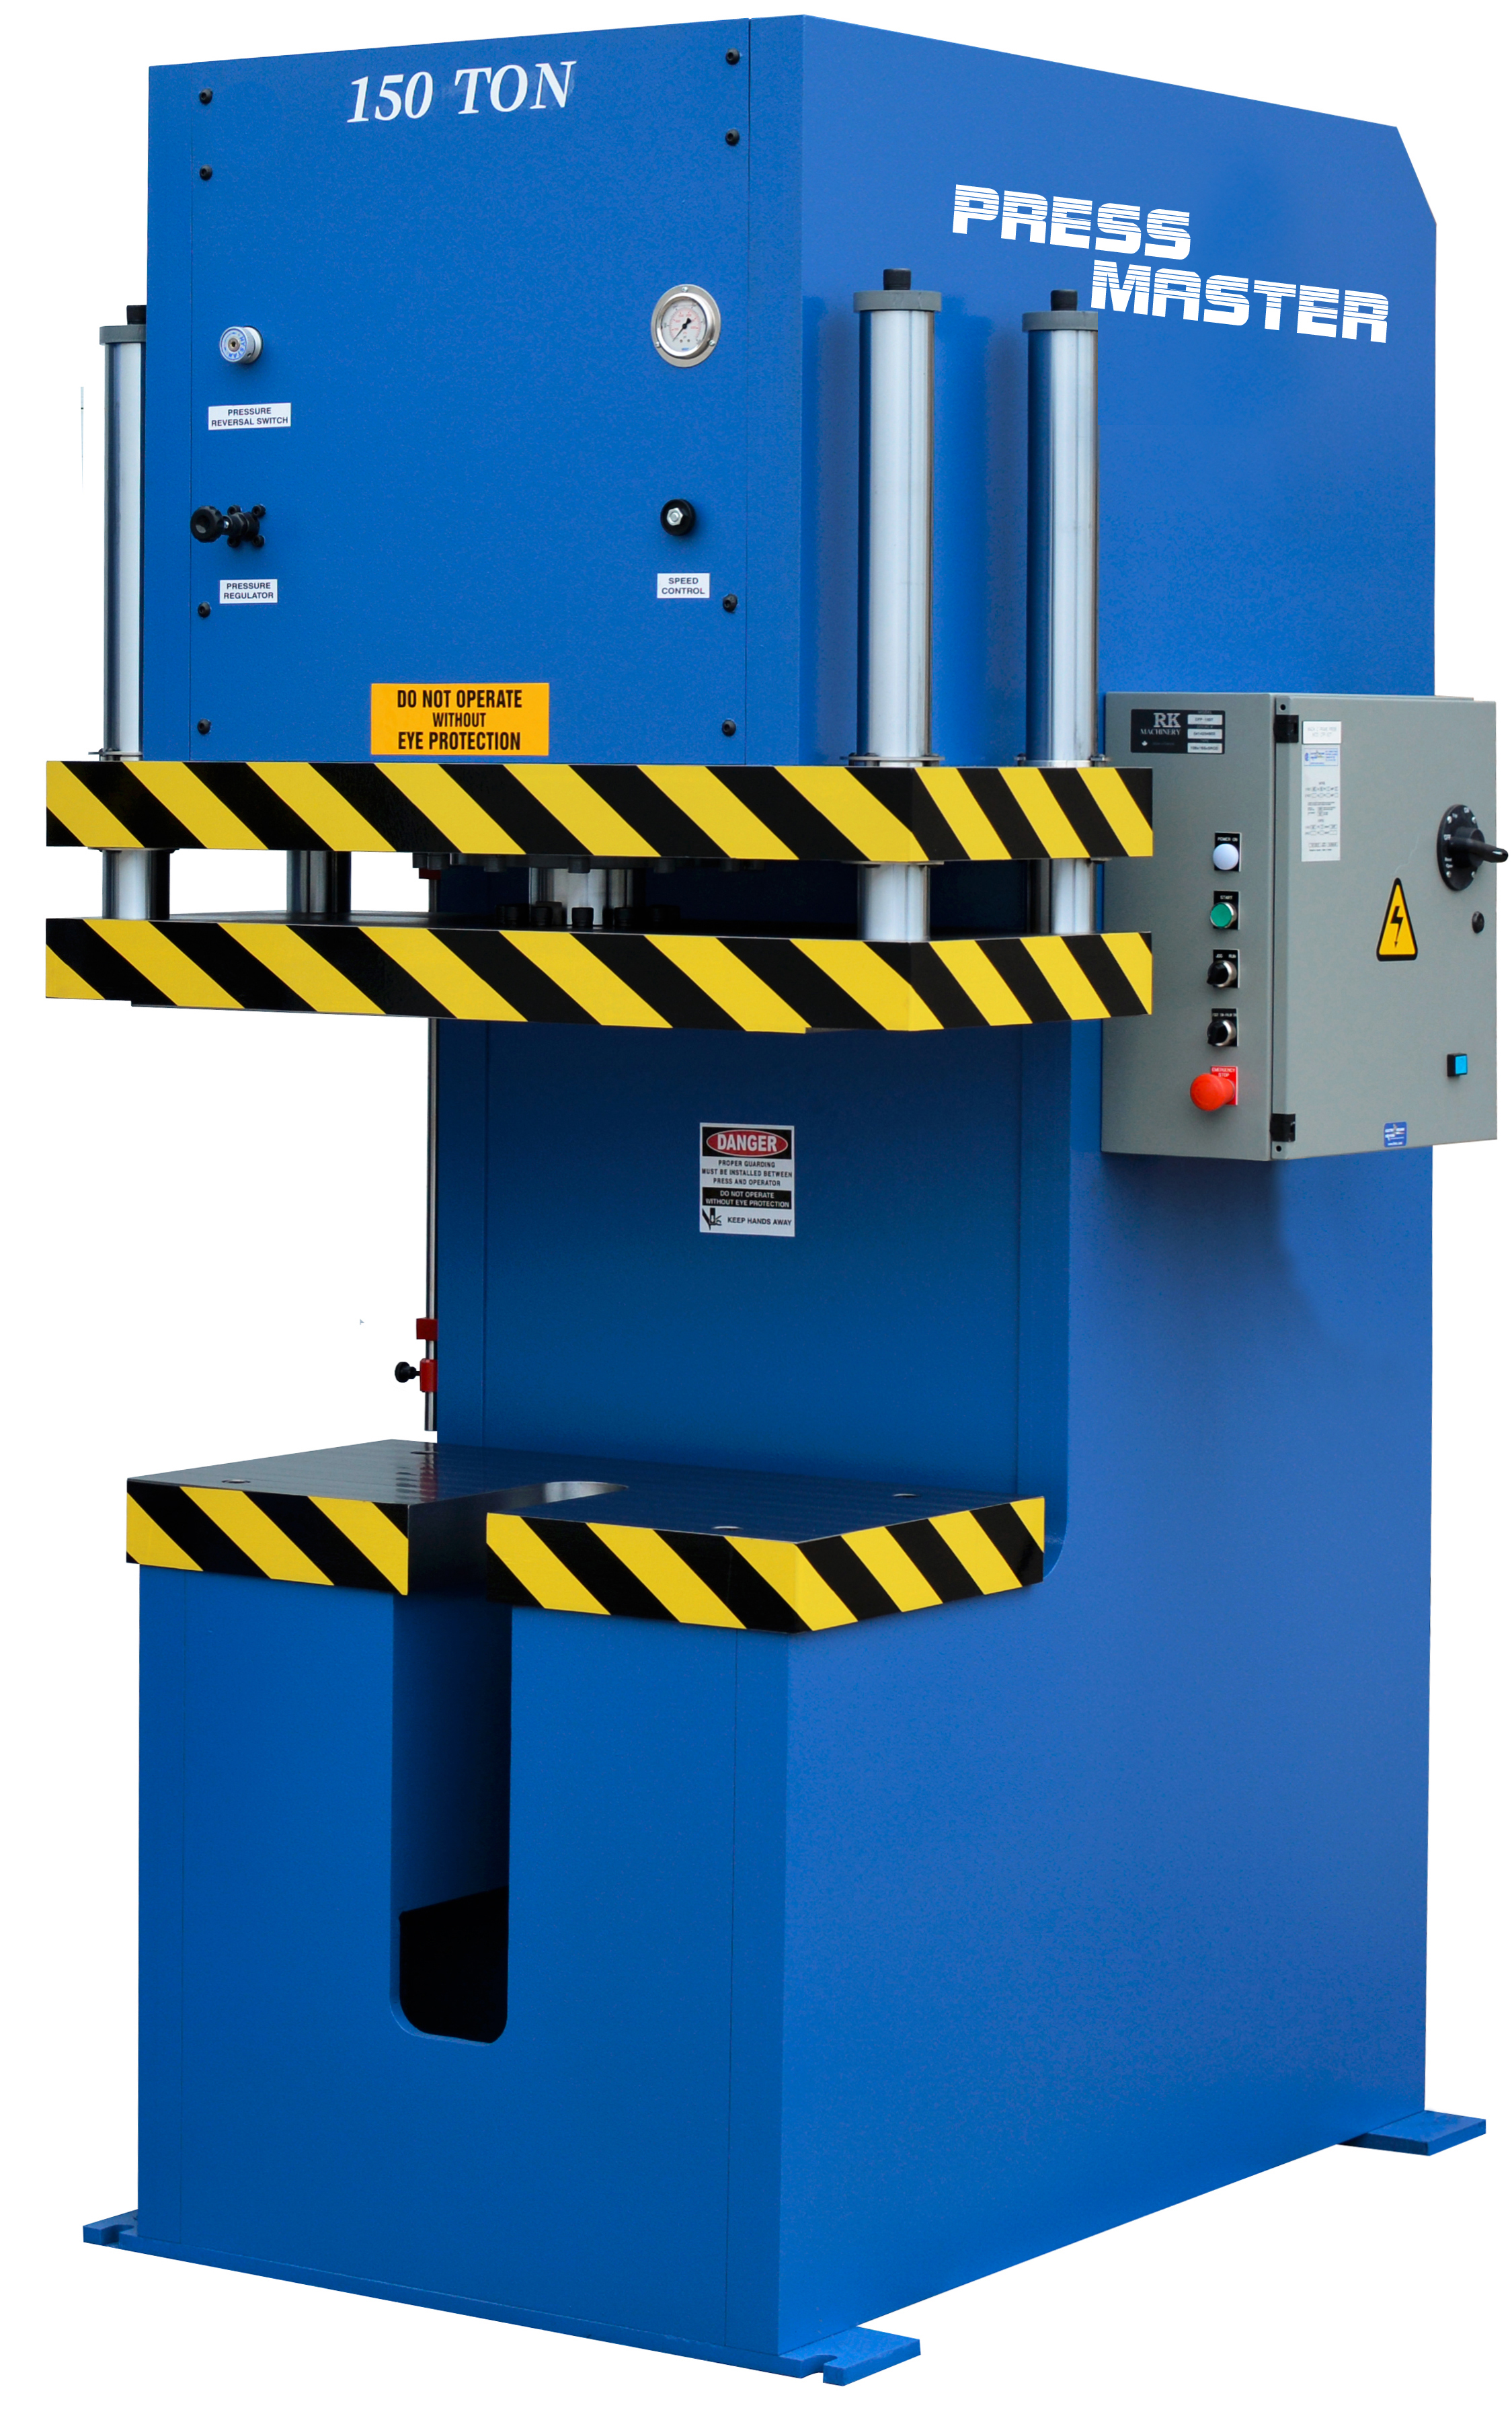 Hydraulic Presses Specialist - Shop H Frame Press - C Frame Press